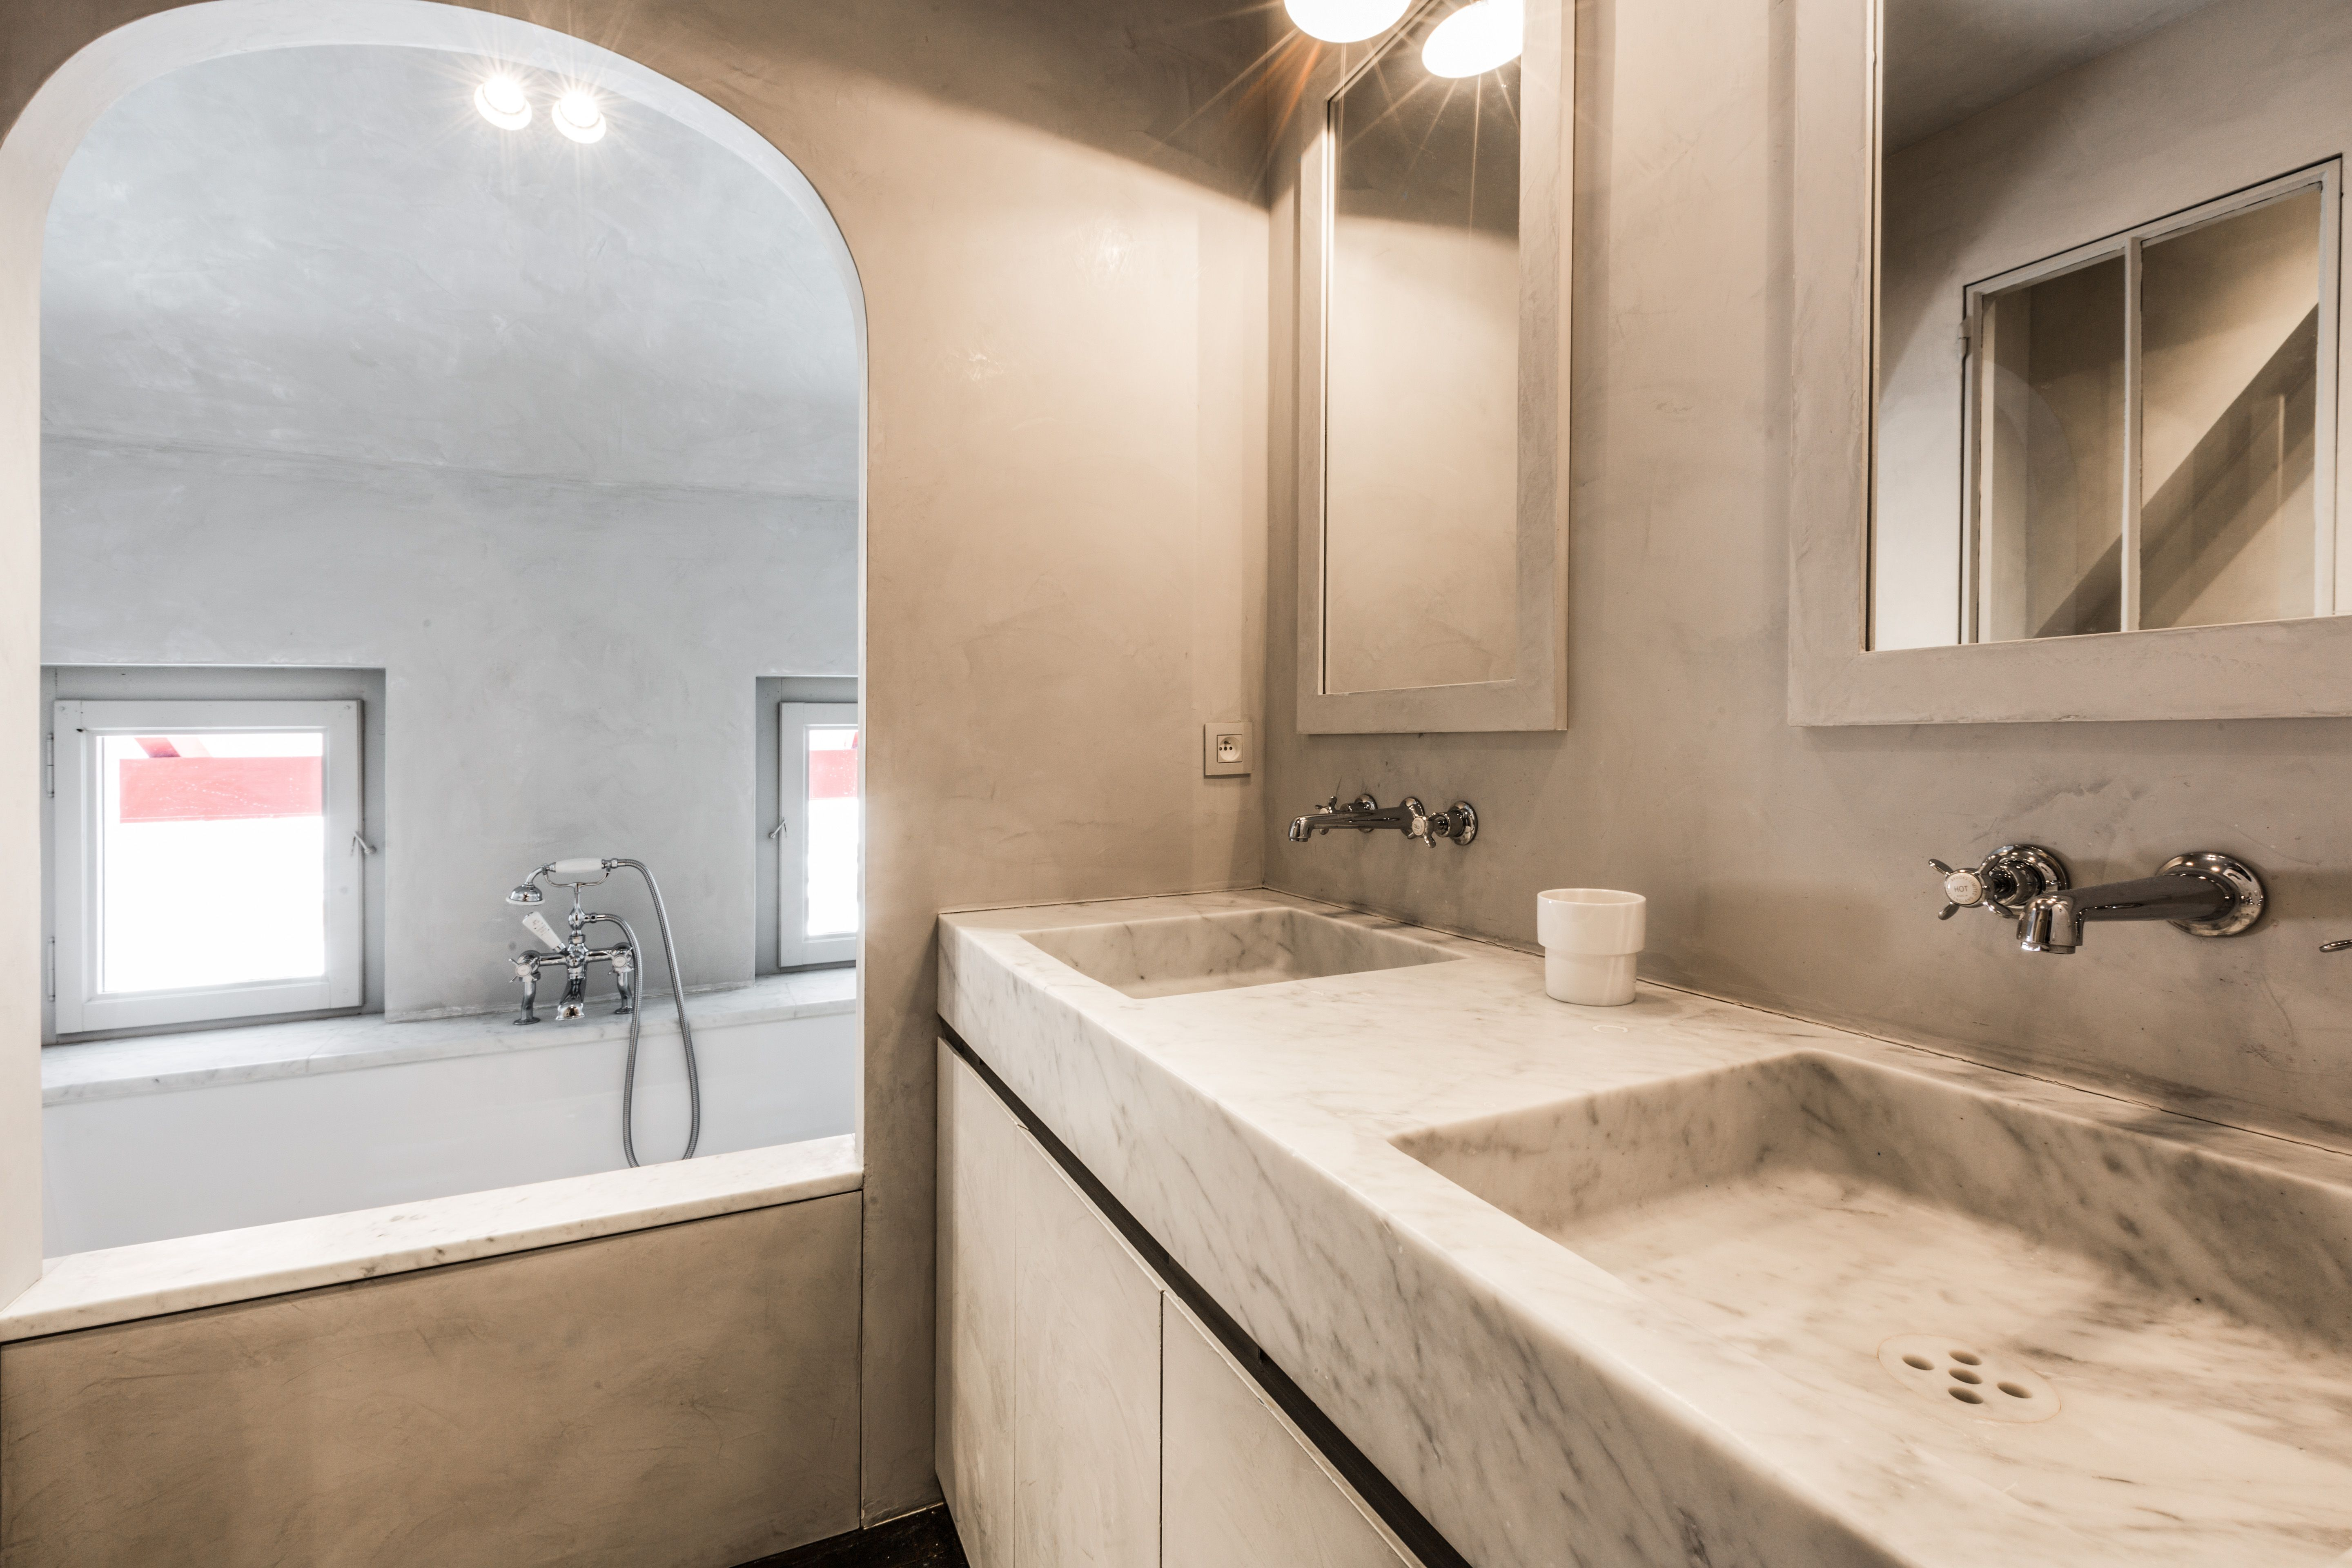 Marble and tadelakt bination in the bathroom designed by